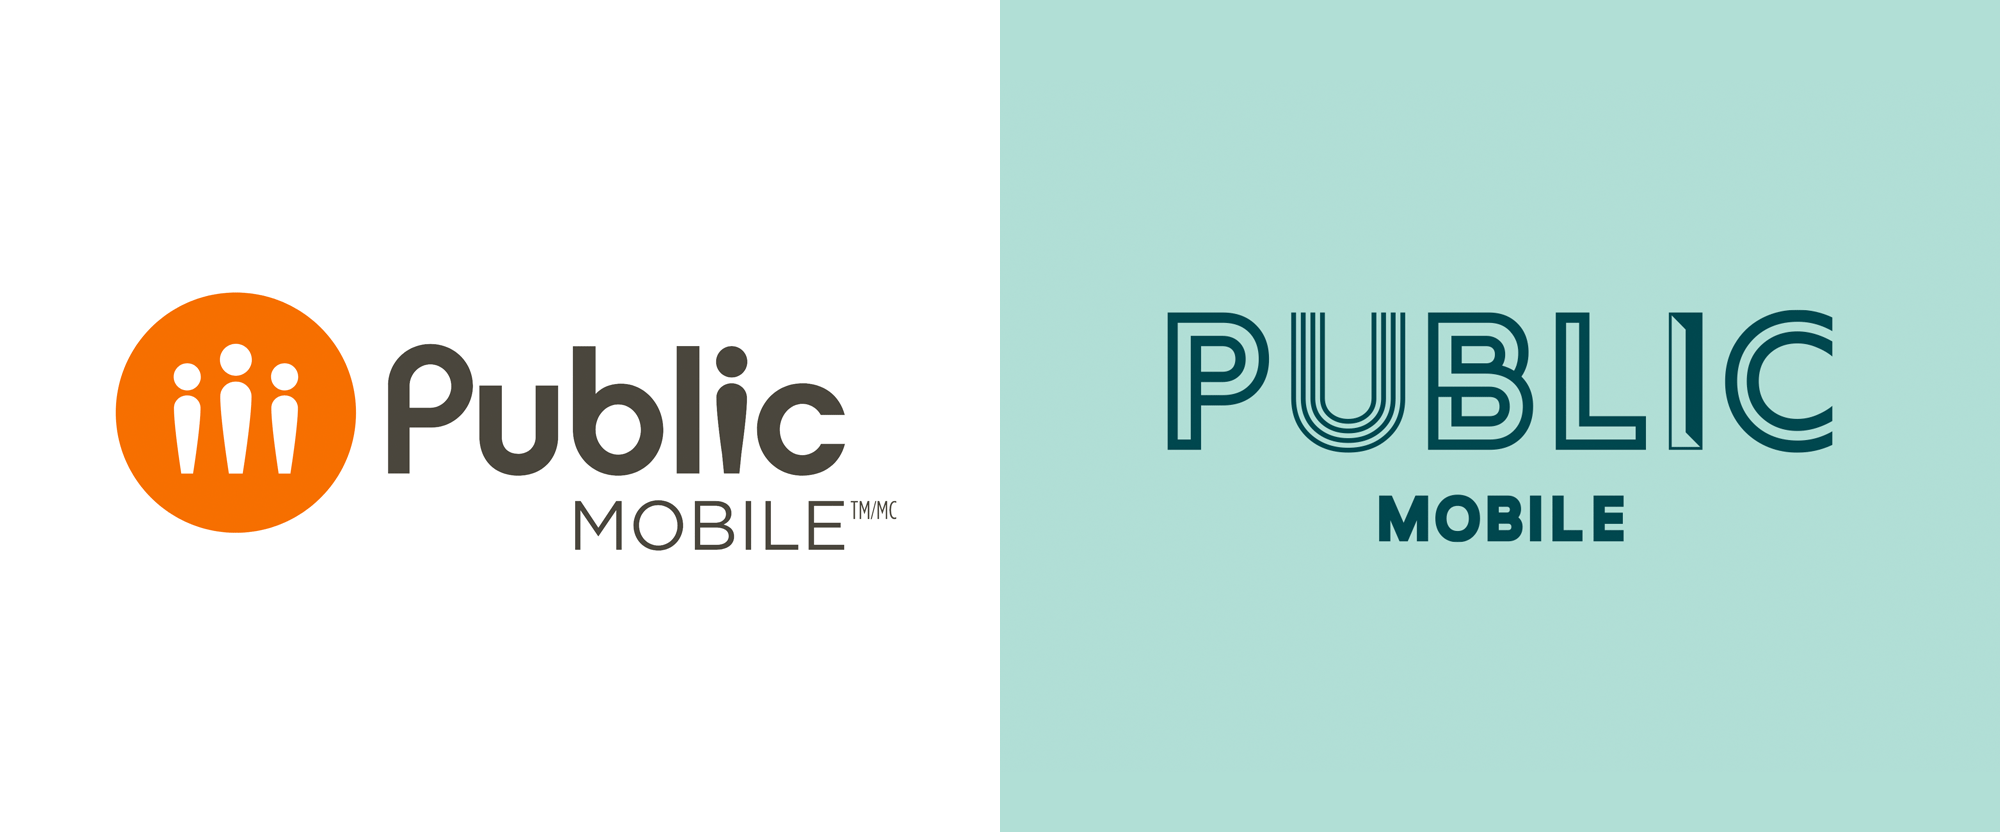 New Logo and Campaign for Public Mobile by Cossette